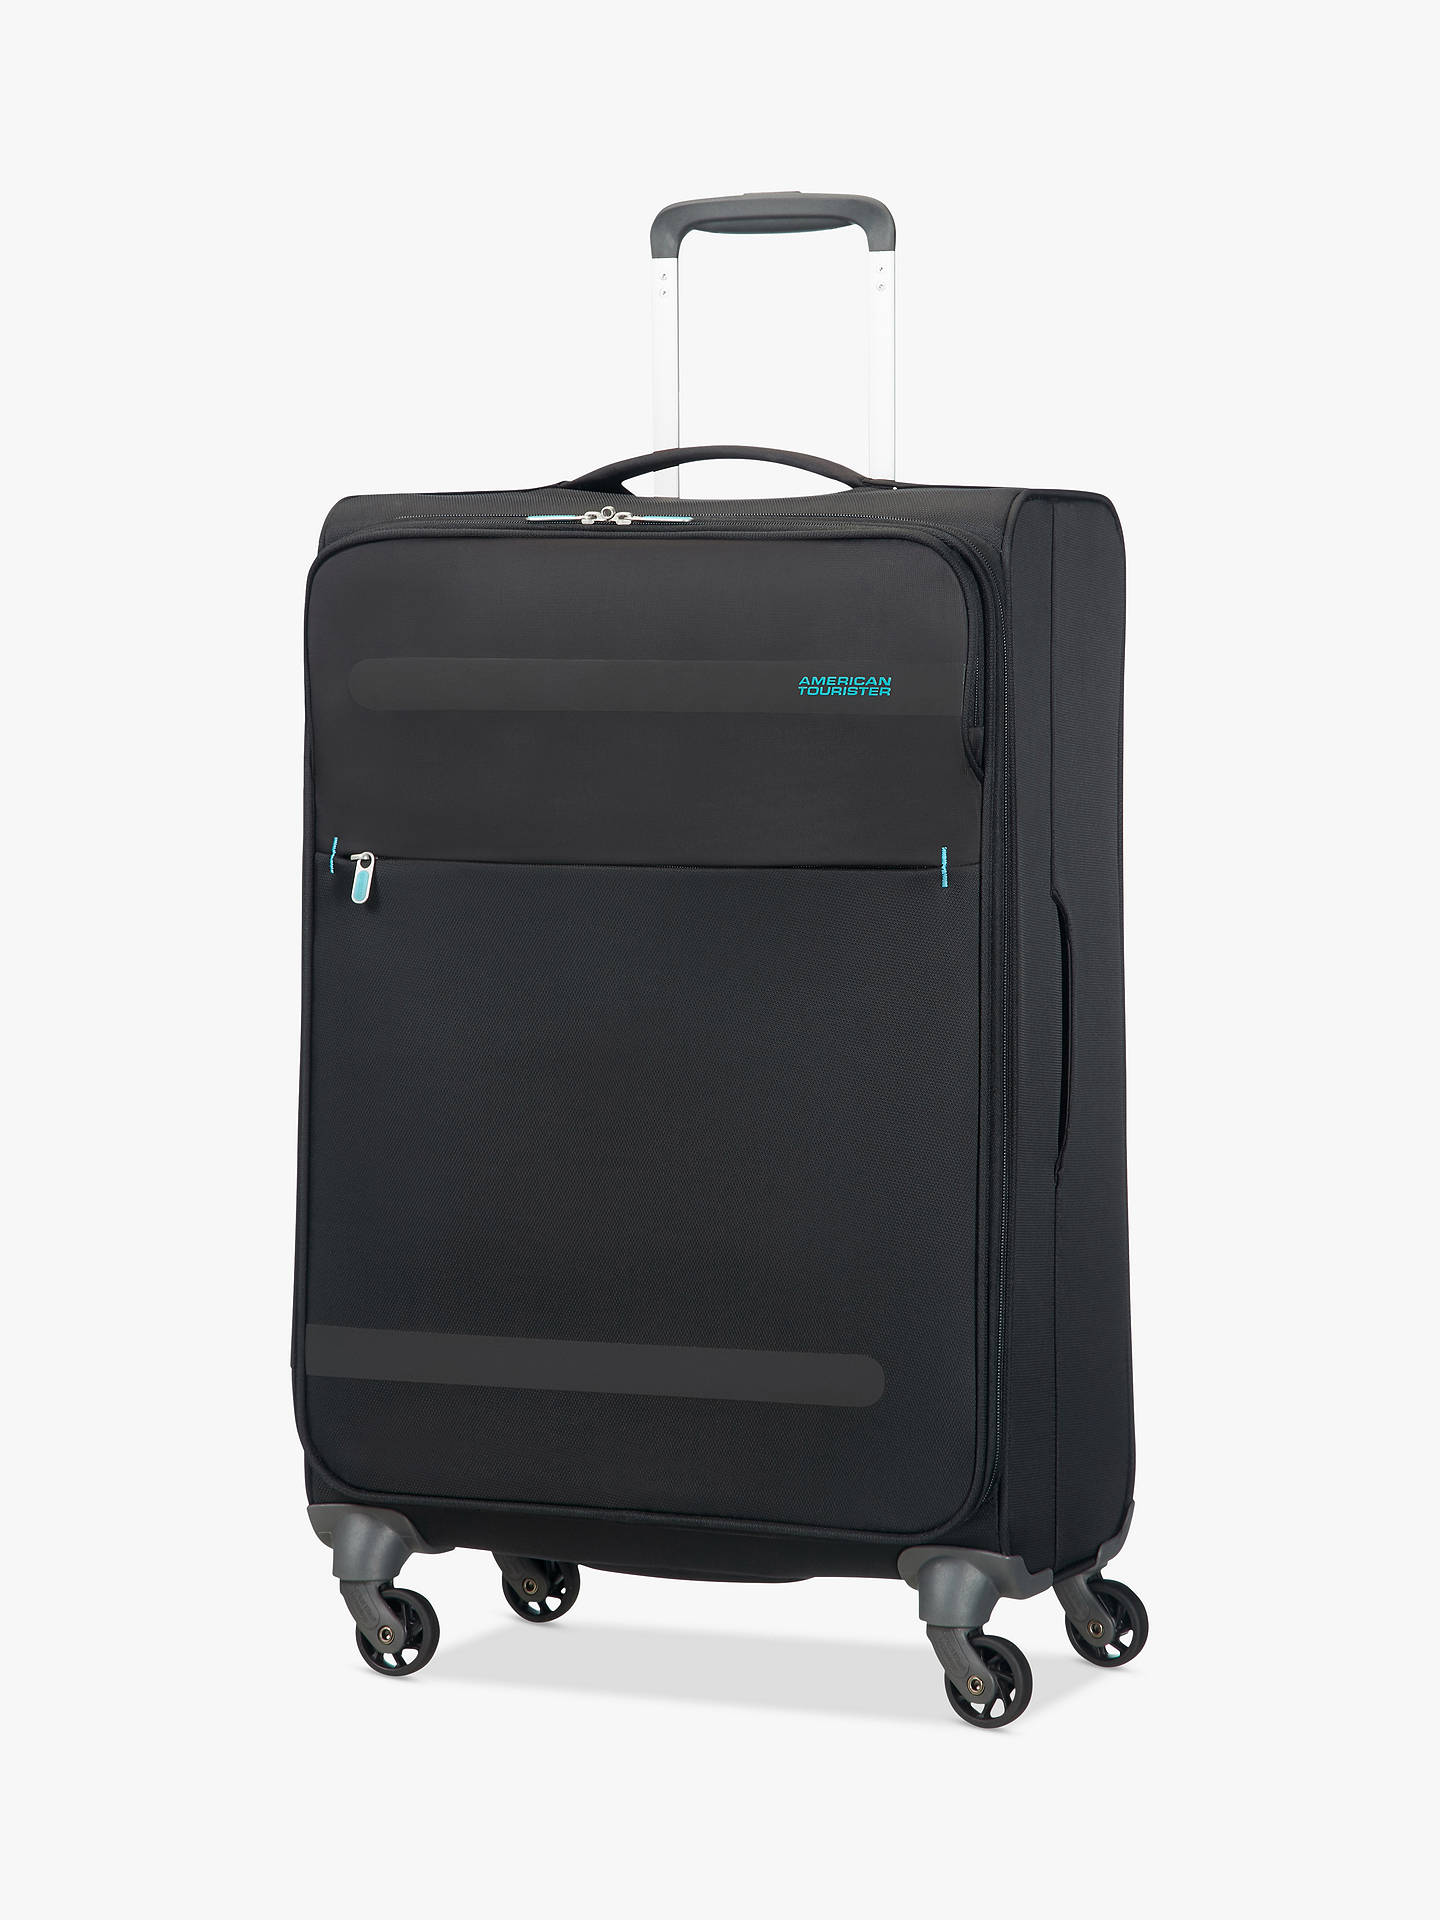 BuyAmerican Tourister Herolite Lifestyle 4-Spinner Wheel 67cm Suitcase, Volcanic Black Online at johnlewis.com